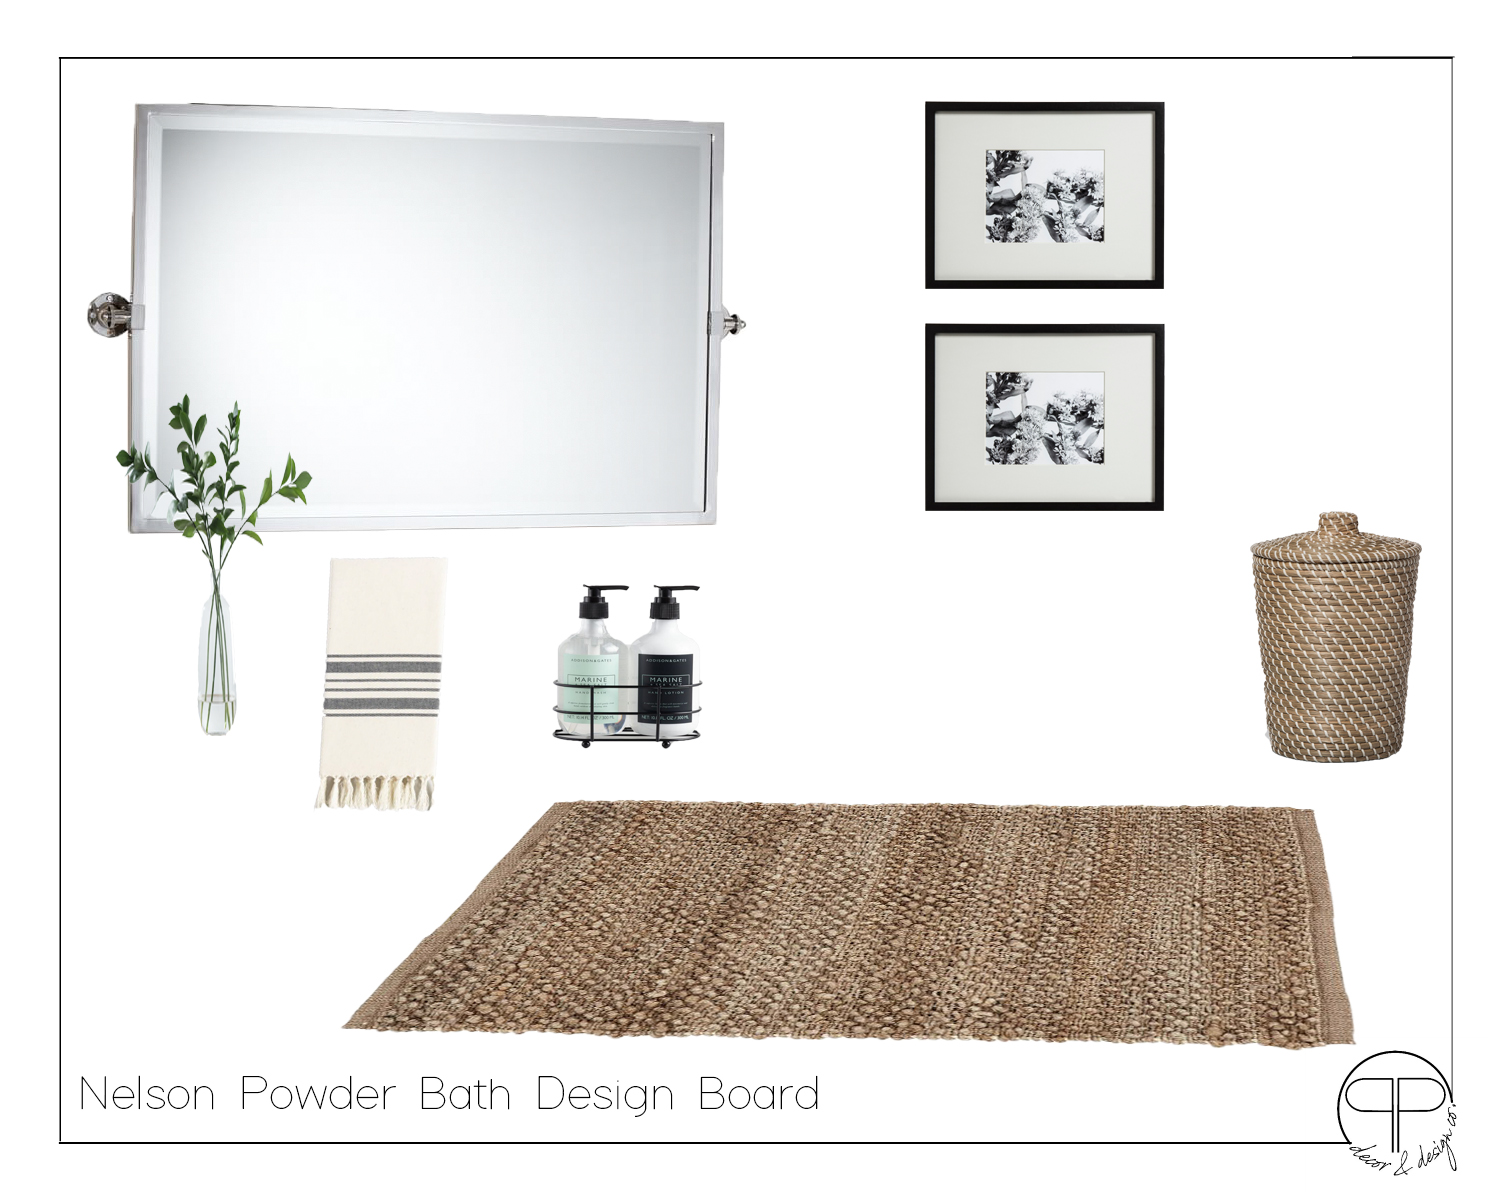 Nelson_Powder_Bath_Design_Board.jpg